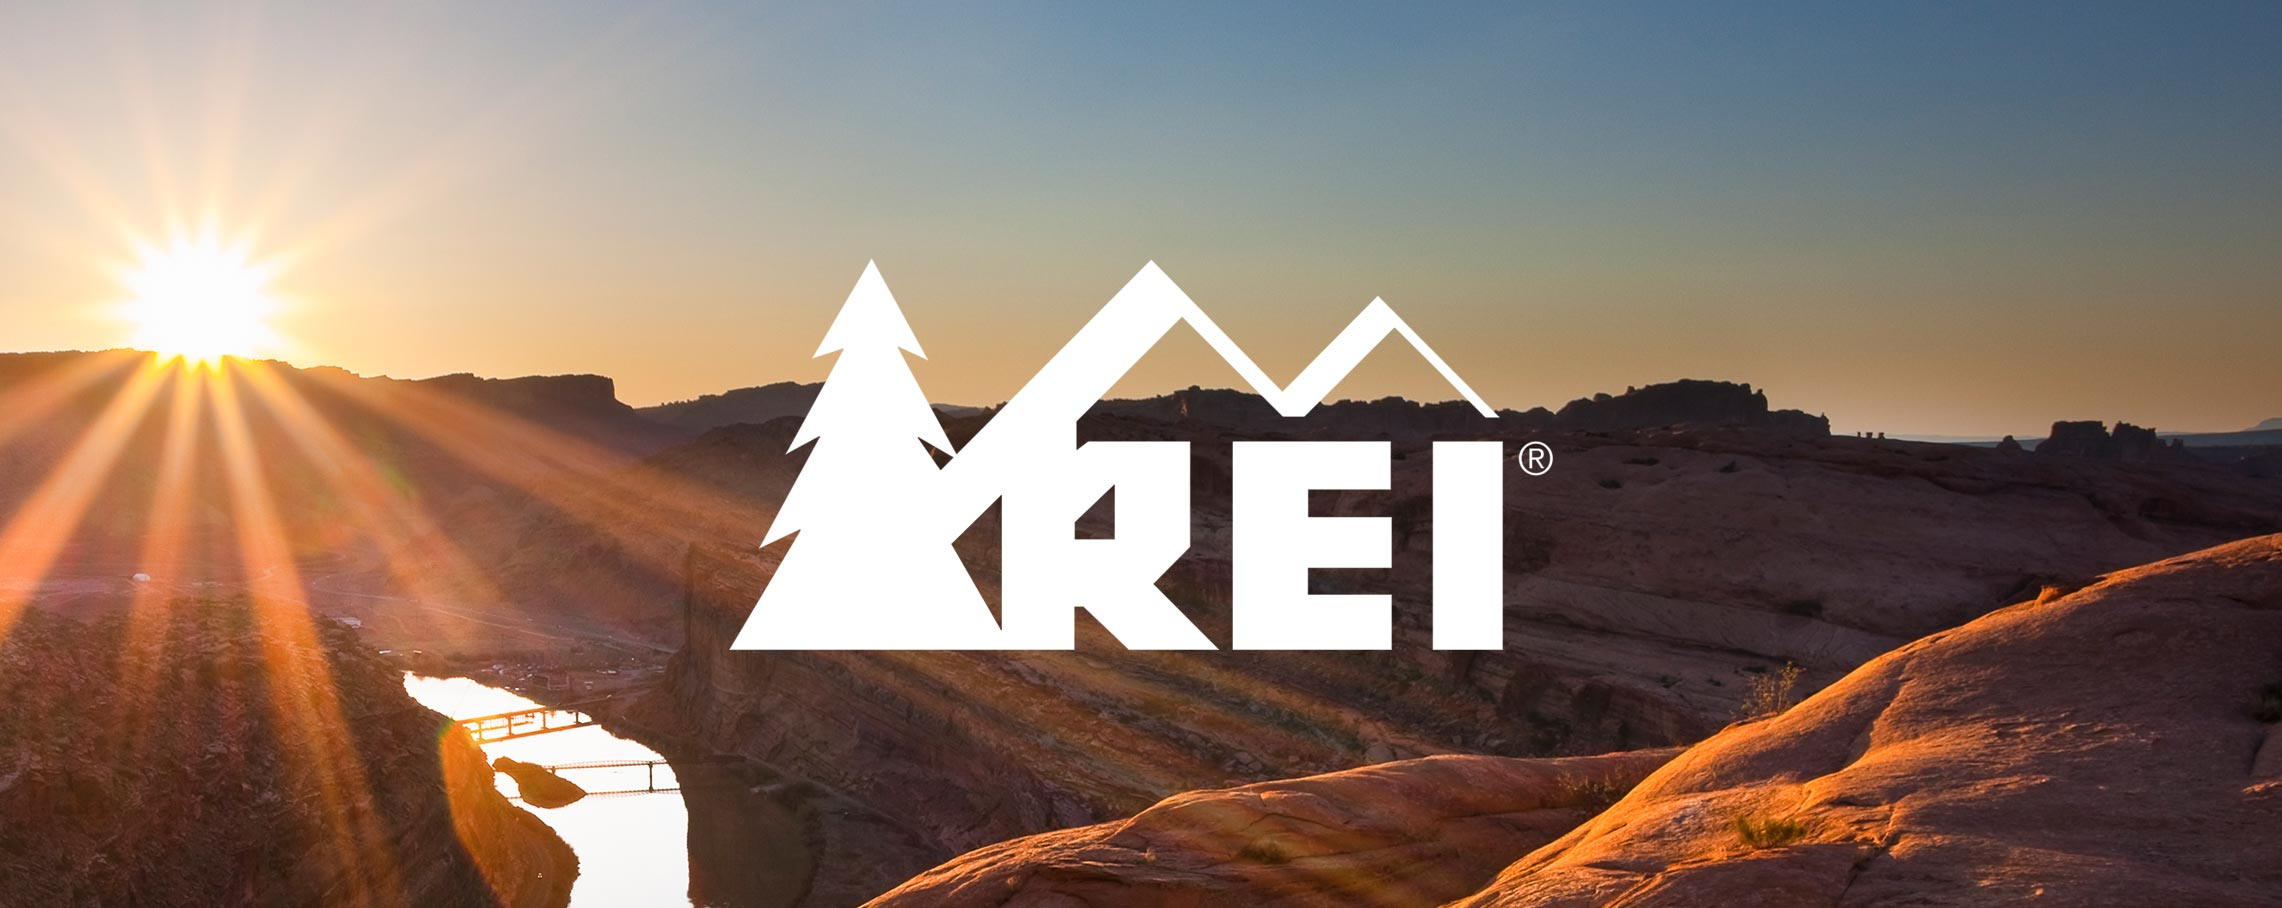 REI-cmo-marketing-customer service skills-conversation management